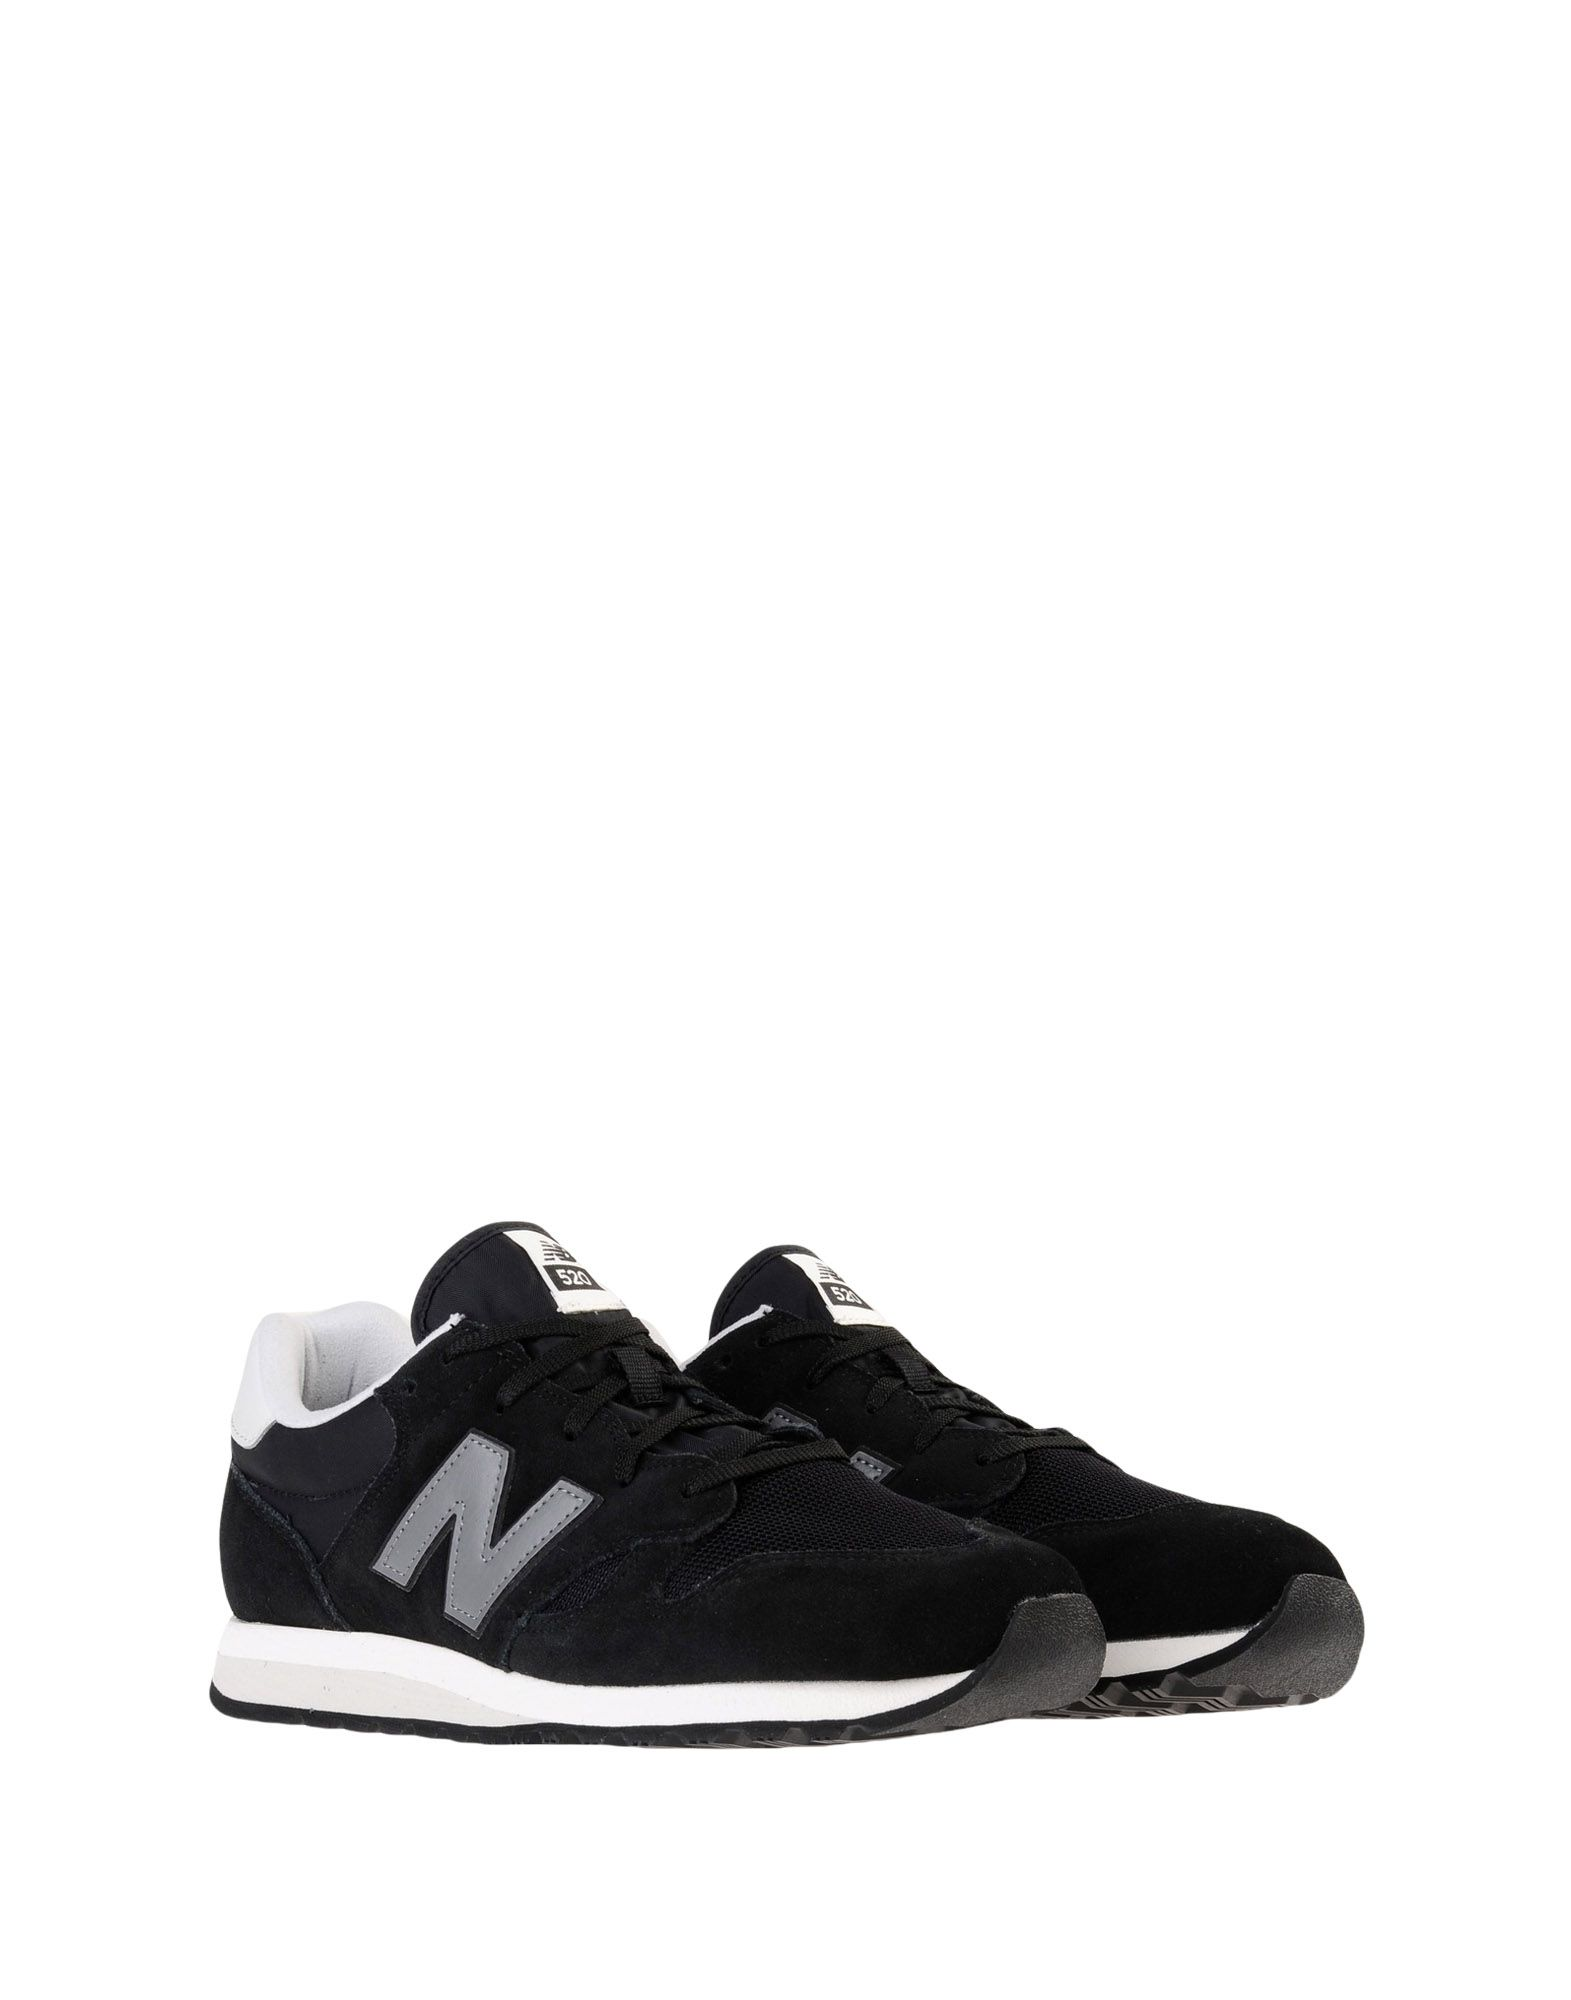 Sneakers New Balance 520 Vintage Basic - Femme - Sneakers New Balance sur